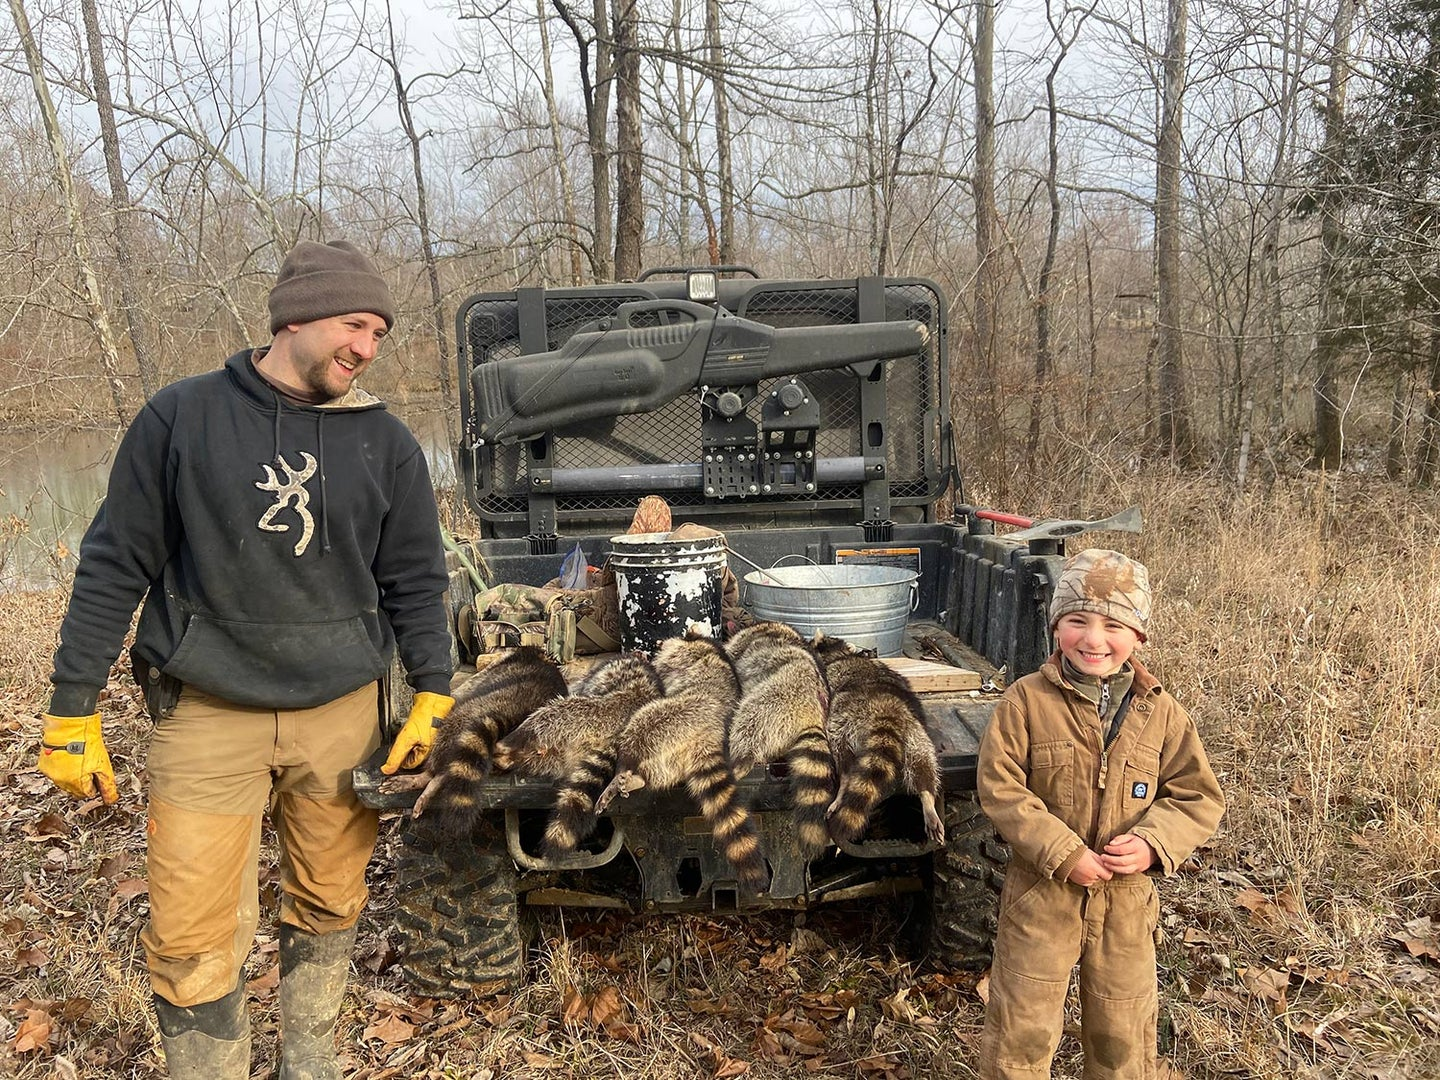 The author and his boy, Anse, had a productive day of checking traps.